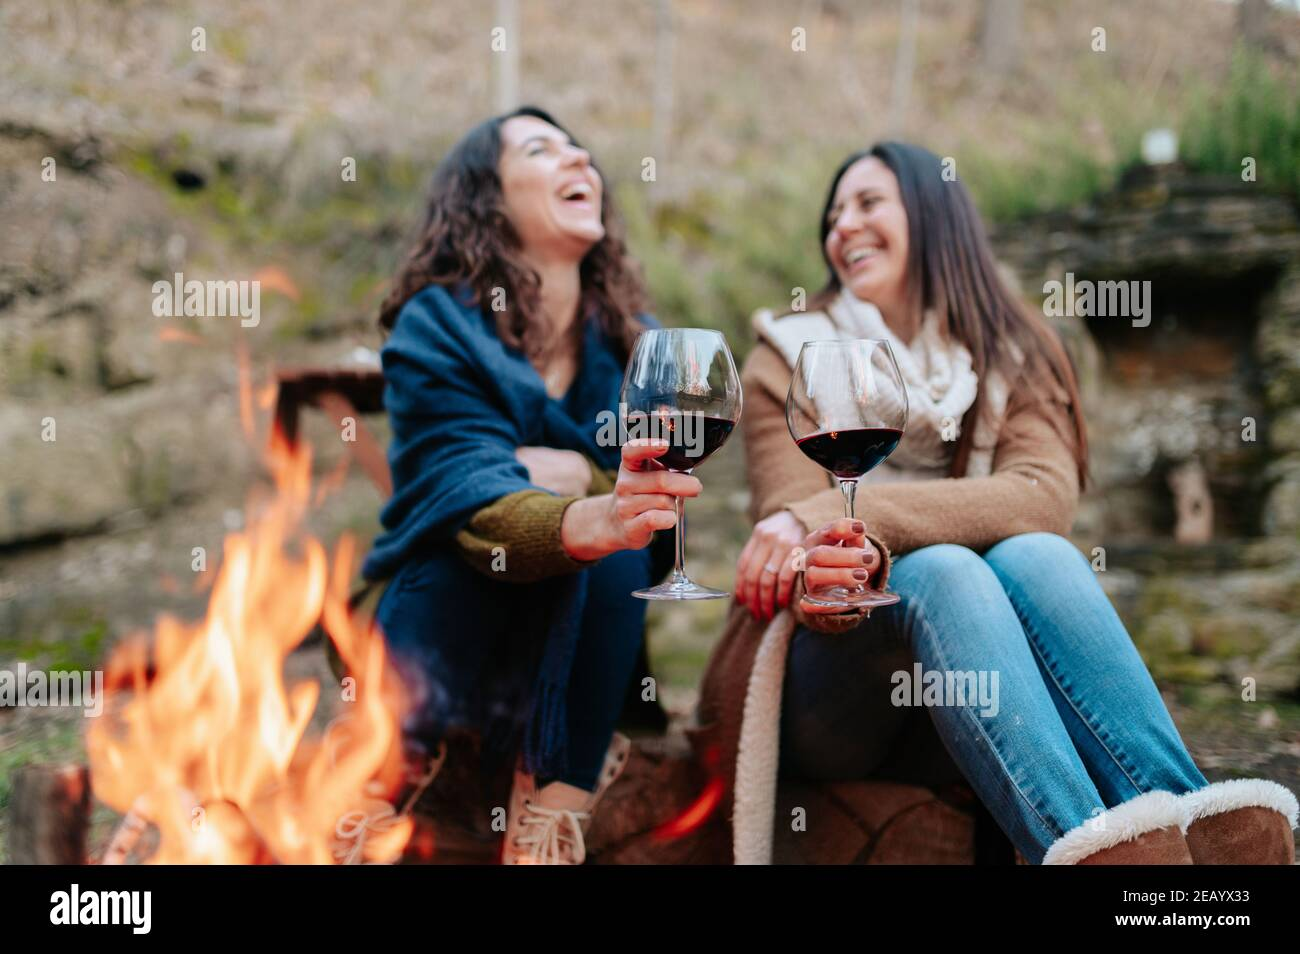 young happy women laughing, holding glass of red wine. Females warming next to the fire. Campfire, outdoors activities concept. Stock Photo